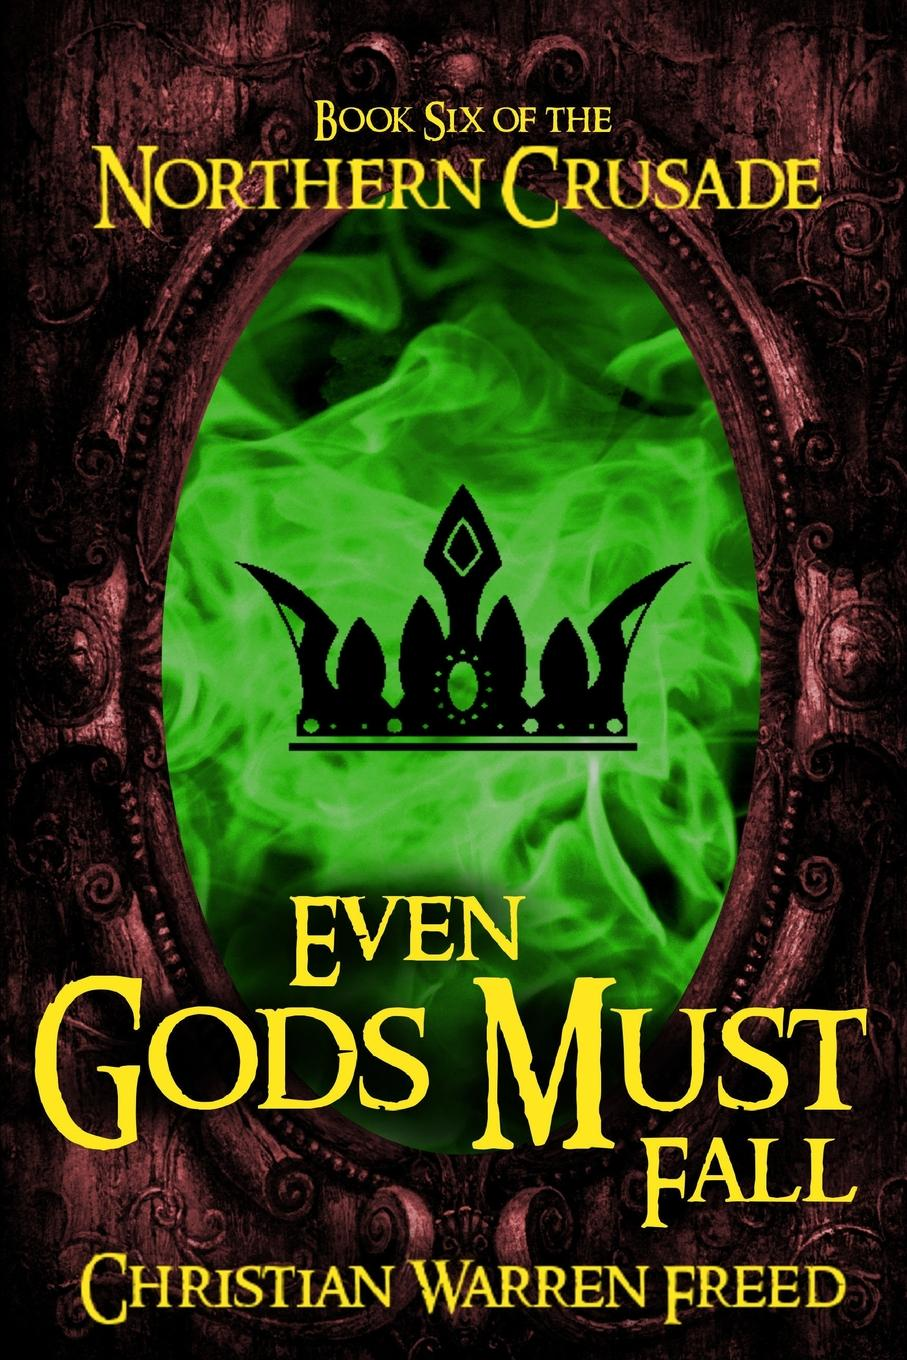 Christian Warren Freed Even Gods Must Fall. Book VI of the Northern Crusade